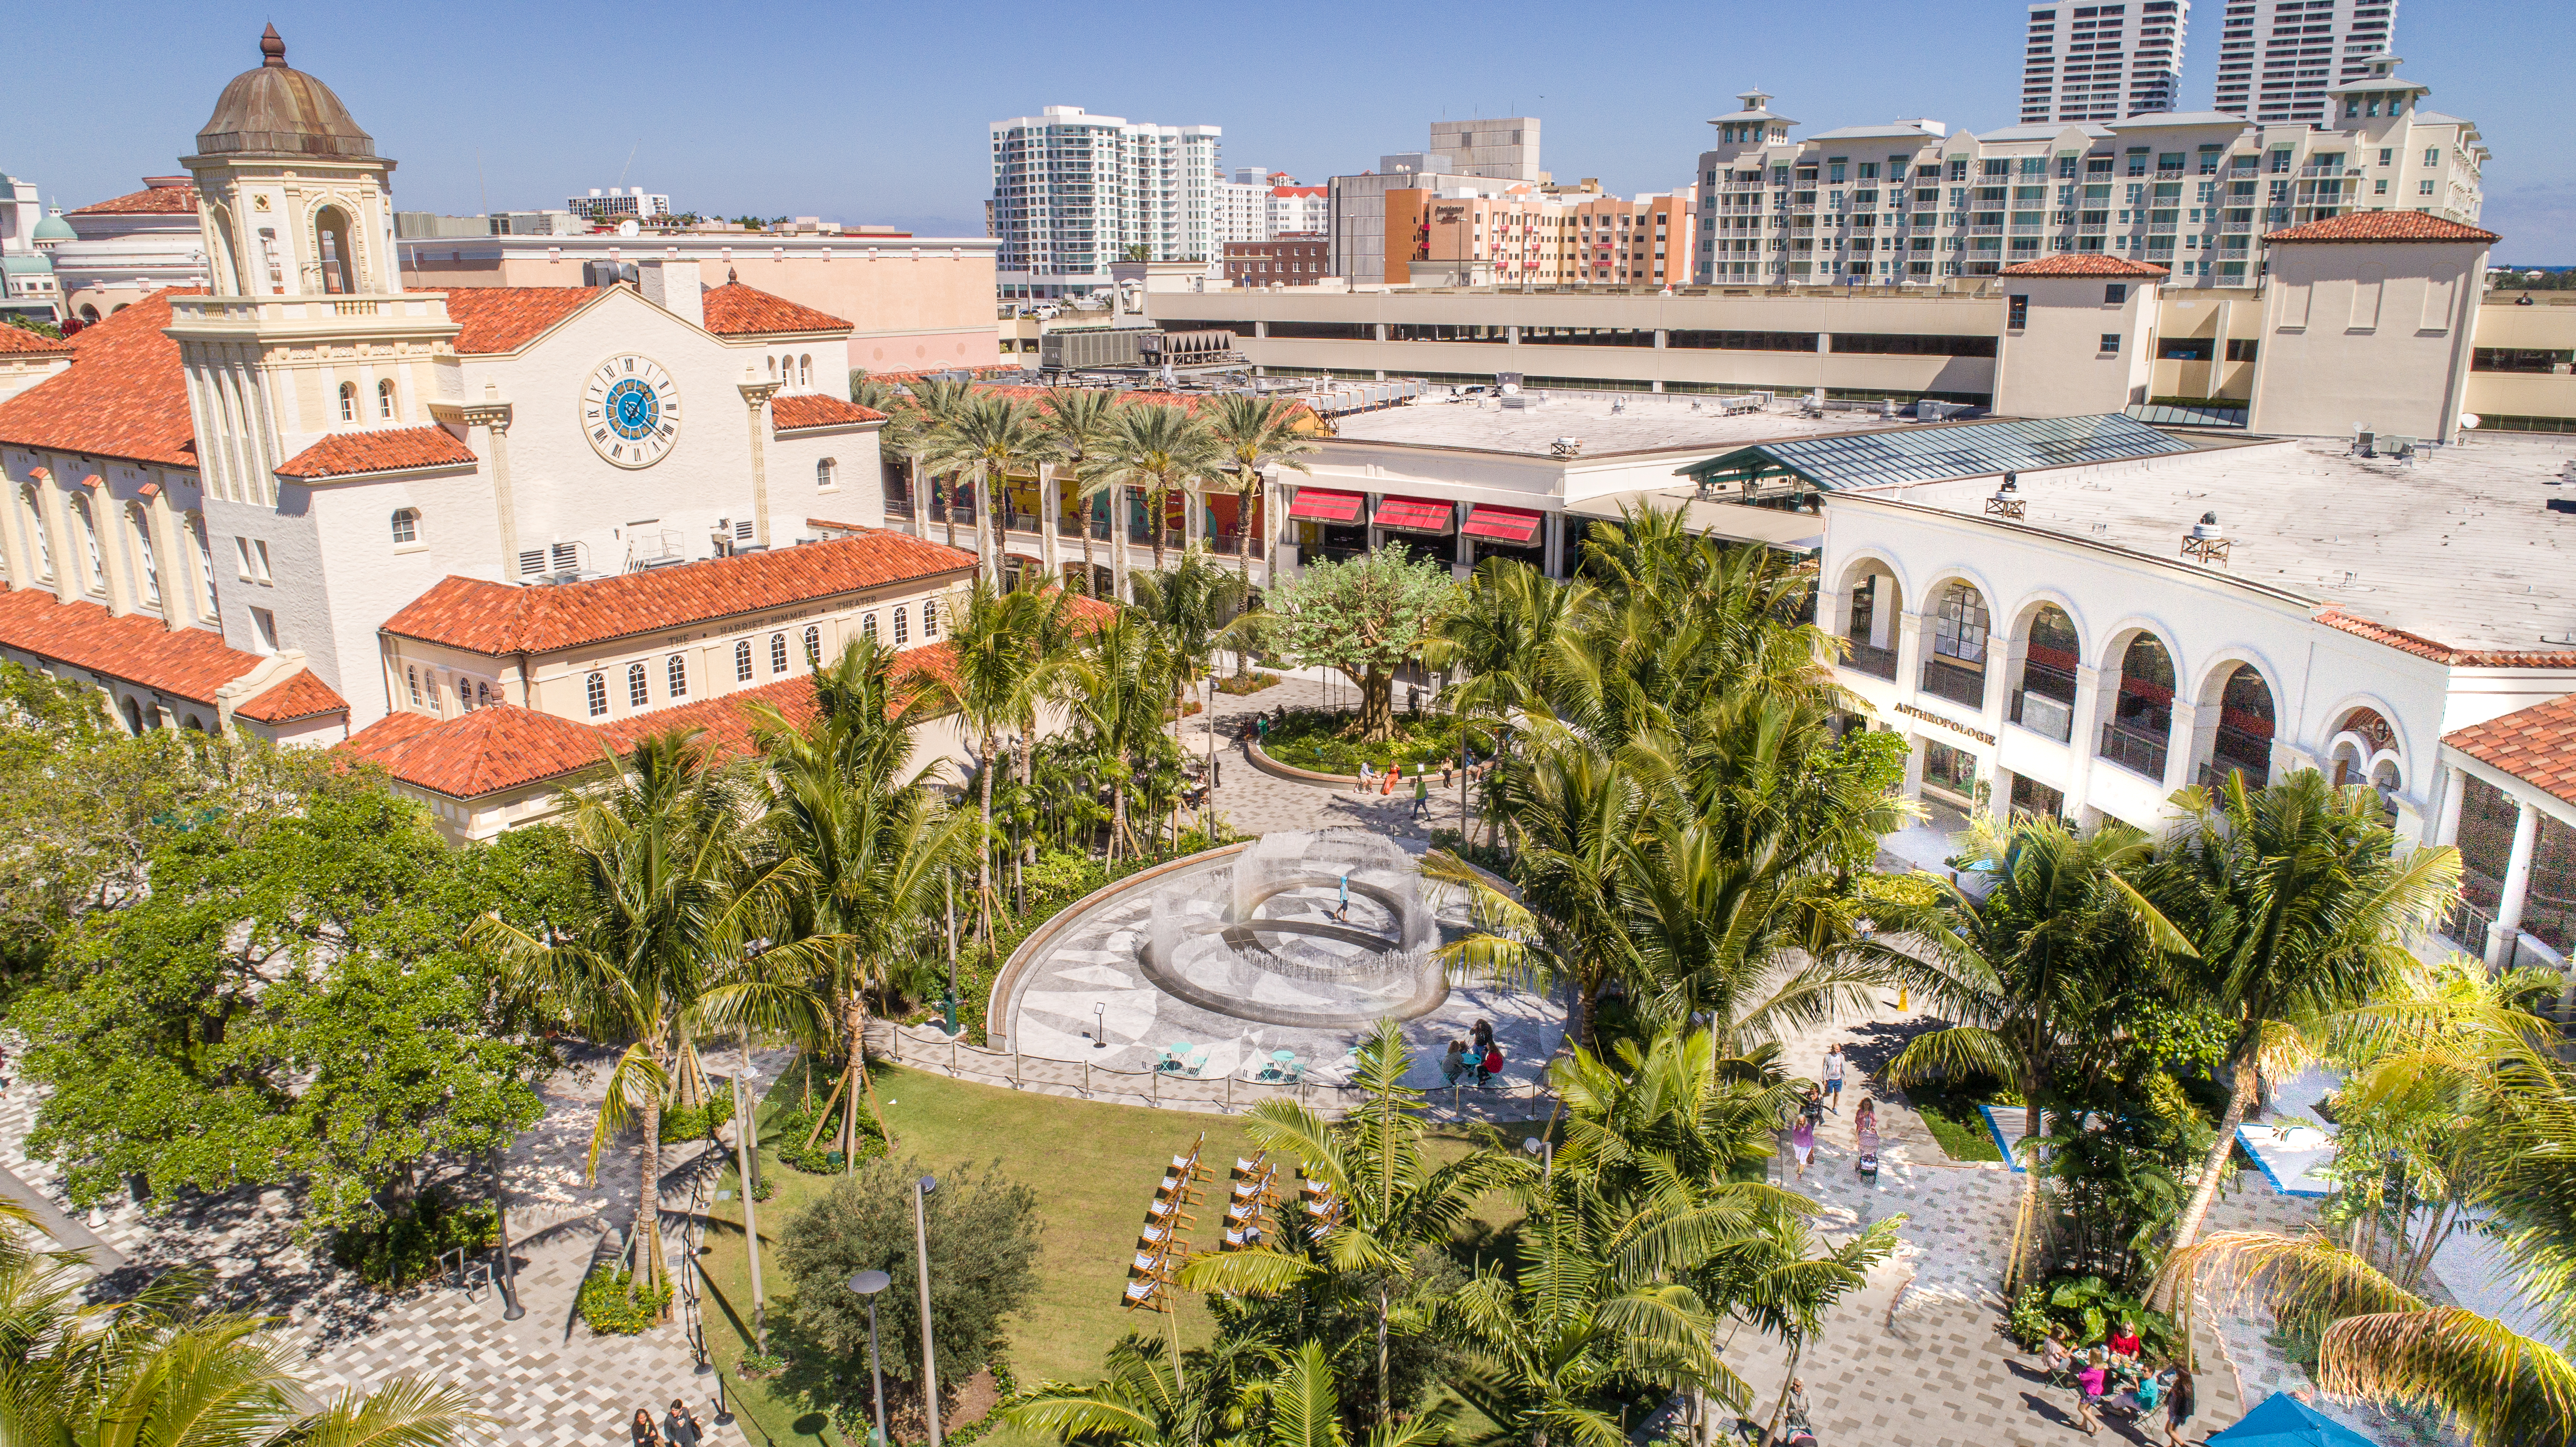 Related Cos. successfully transformed CityPlace in West Palm Beach to Rosemary Square, a mixed-used downtown development with more experiences, food and beverage and outdoor space.